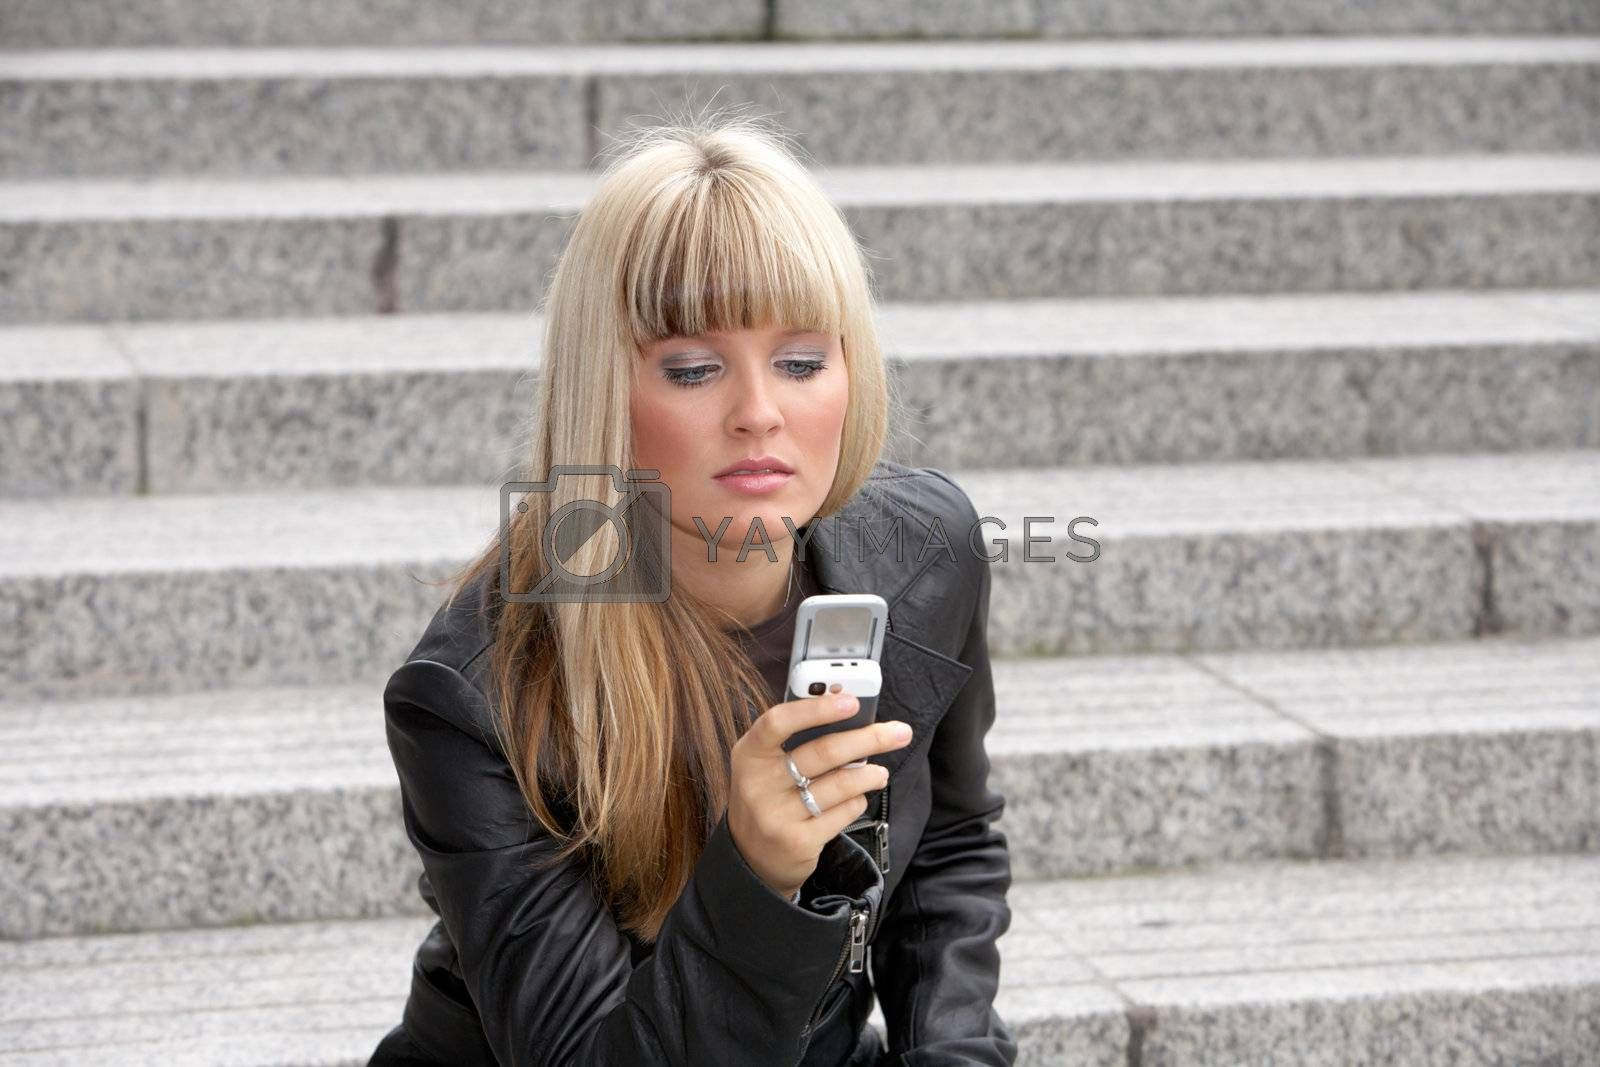 Young woman looking at mobile phone while holding it in hand